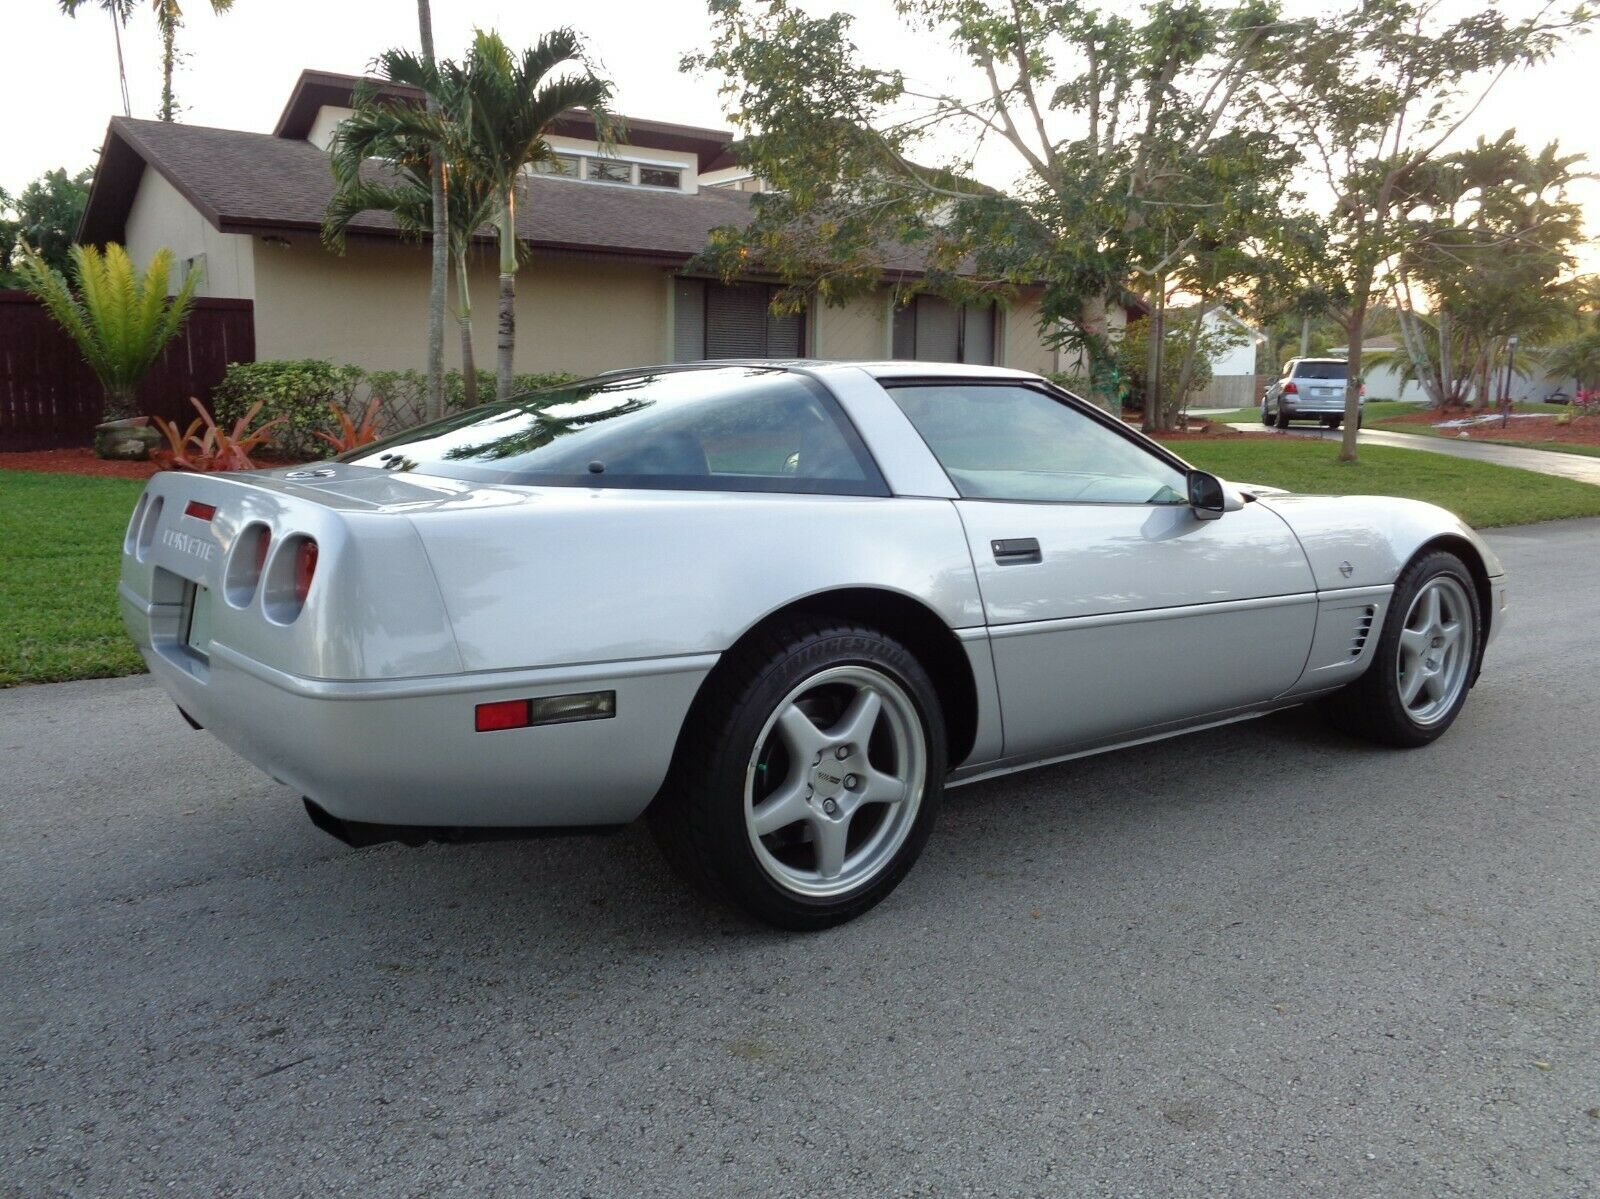 This 1996 Collectors Edition Corvette Convertible is currently for sale on Ebay!